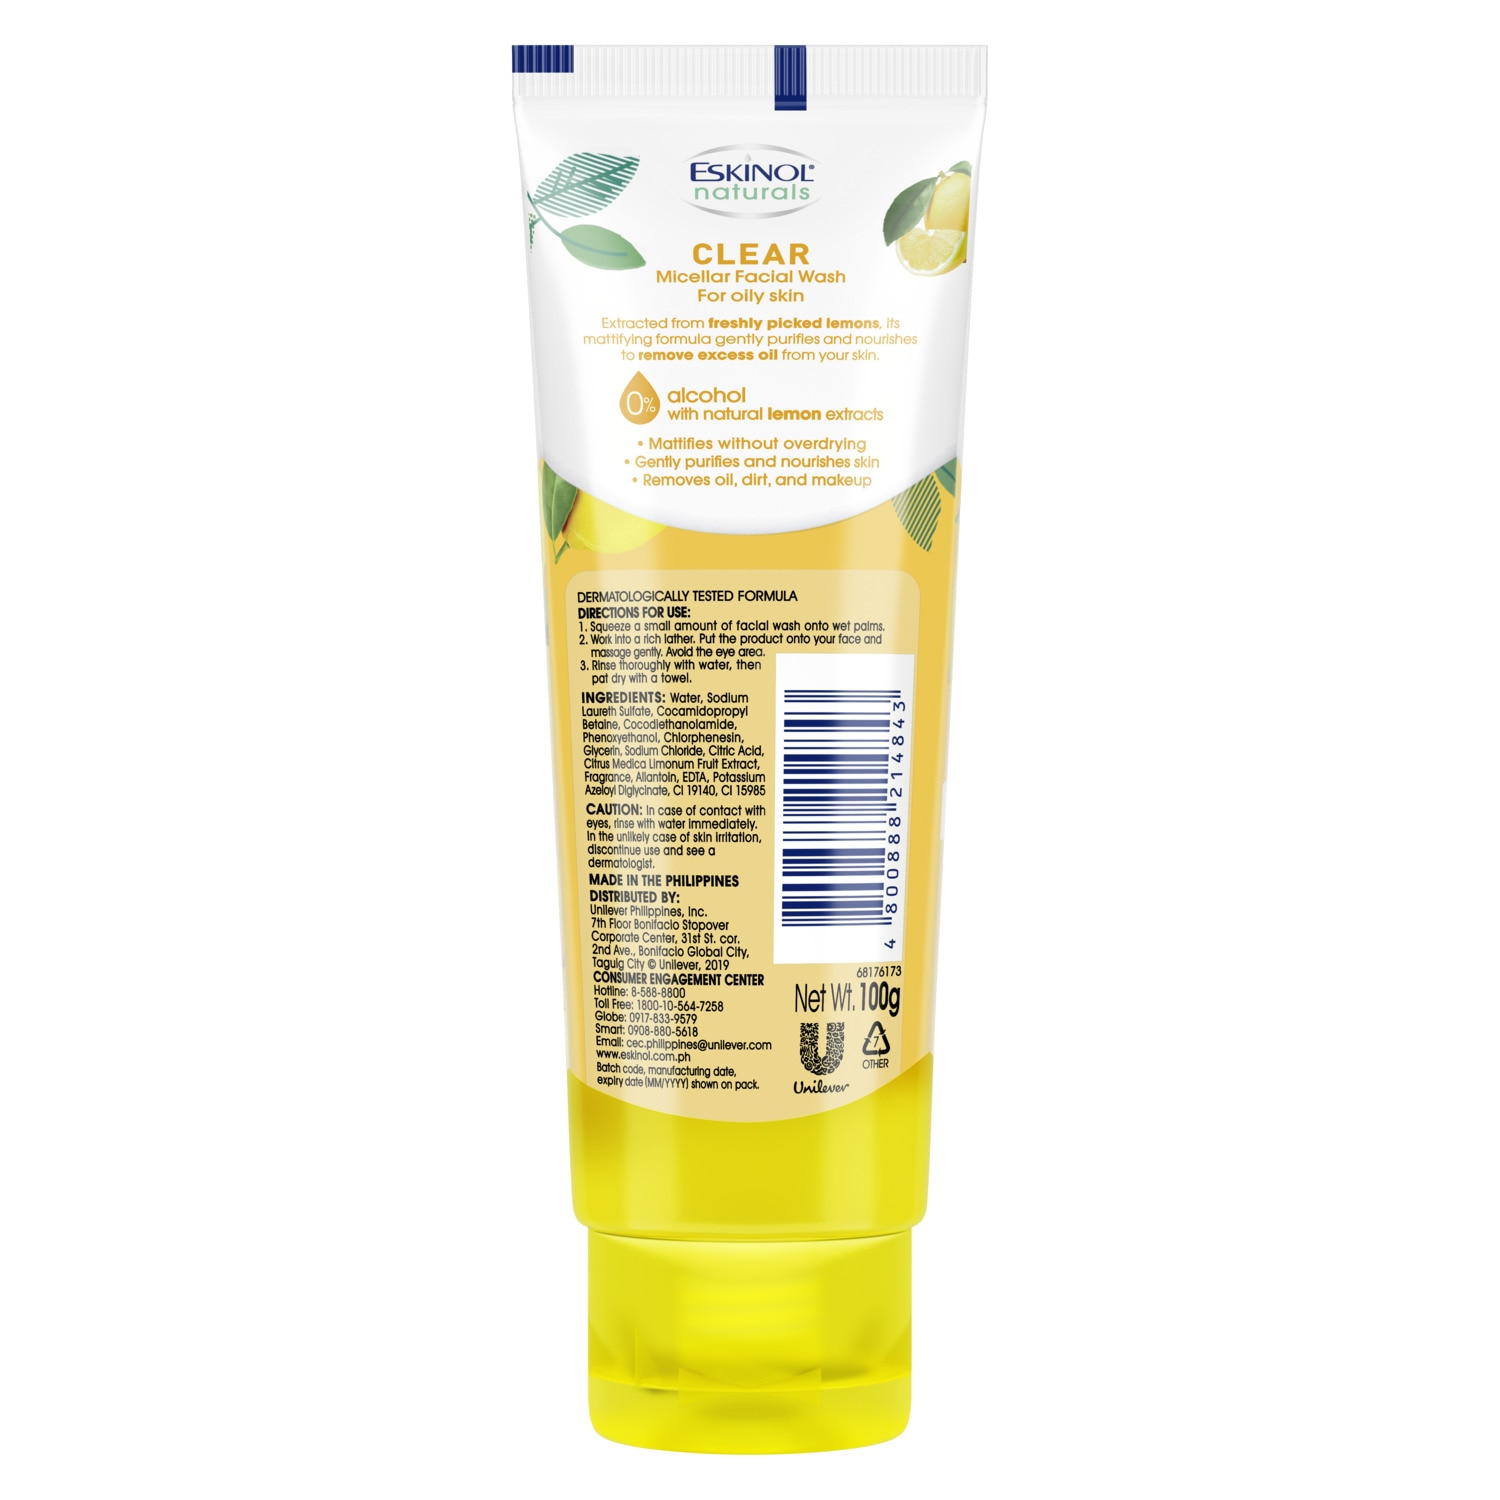 ESKINOLNaturals Micellar Facial Wash Clear with Natural Lemon Extracts 100g,For WomenFree (1) Watsons Dermaction Plus Antiacne St20x2 for every purchase of Skin Care products